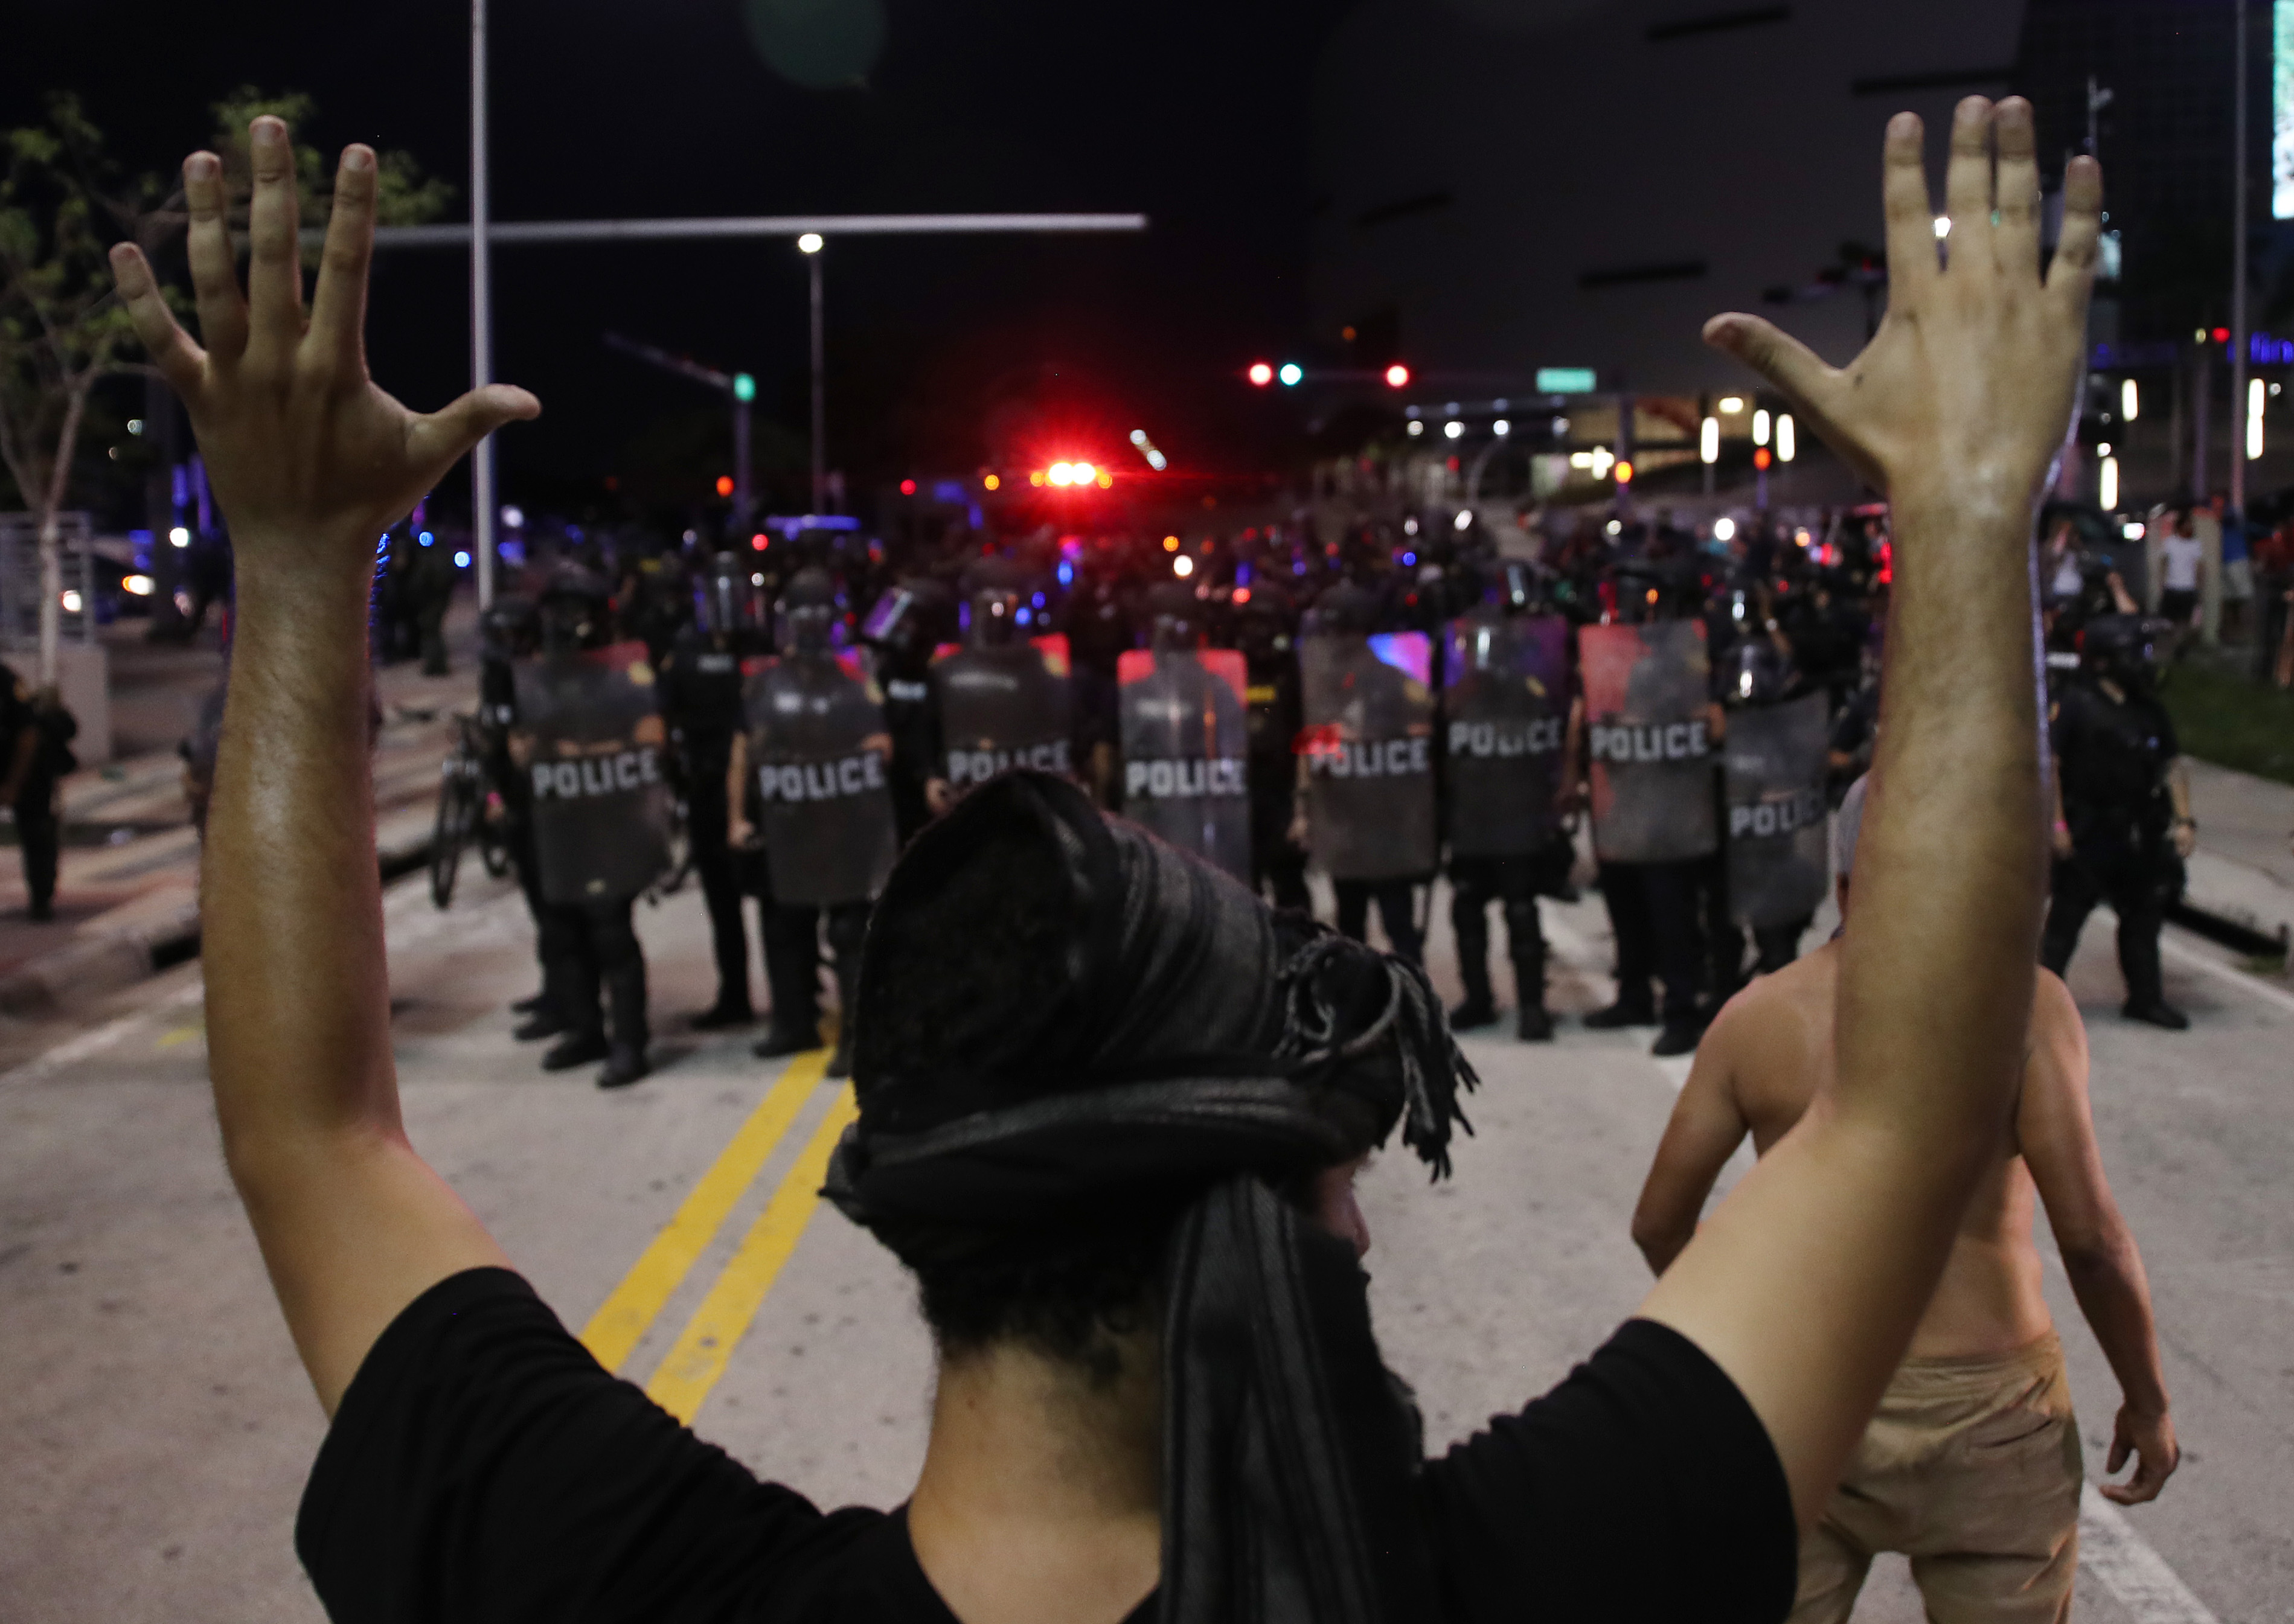 Since Michael Brown's fatal shooting in Ferguson, race relations and trust in police has only gotten worse